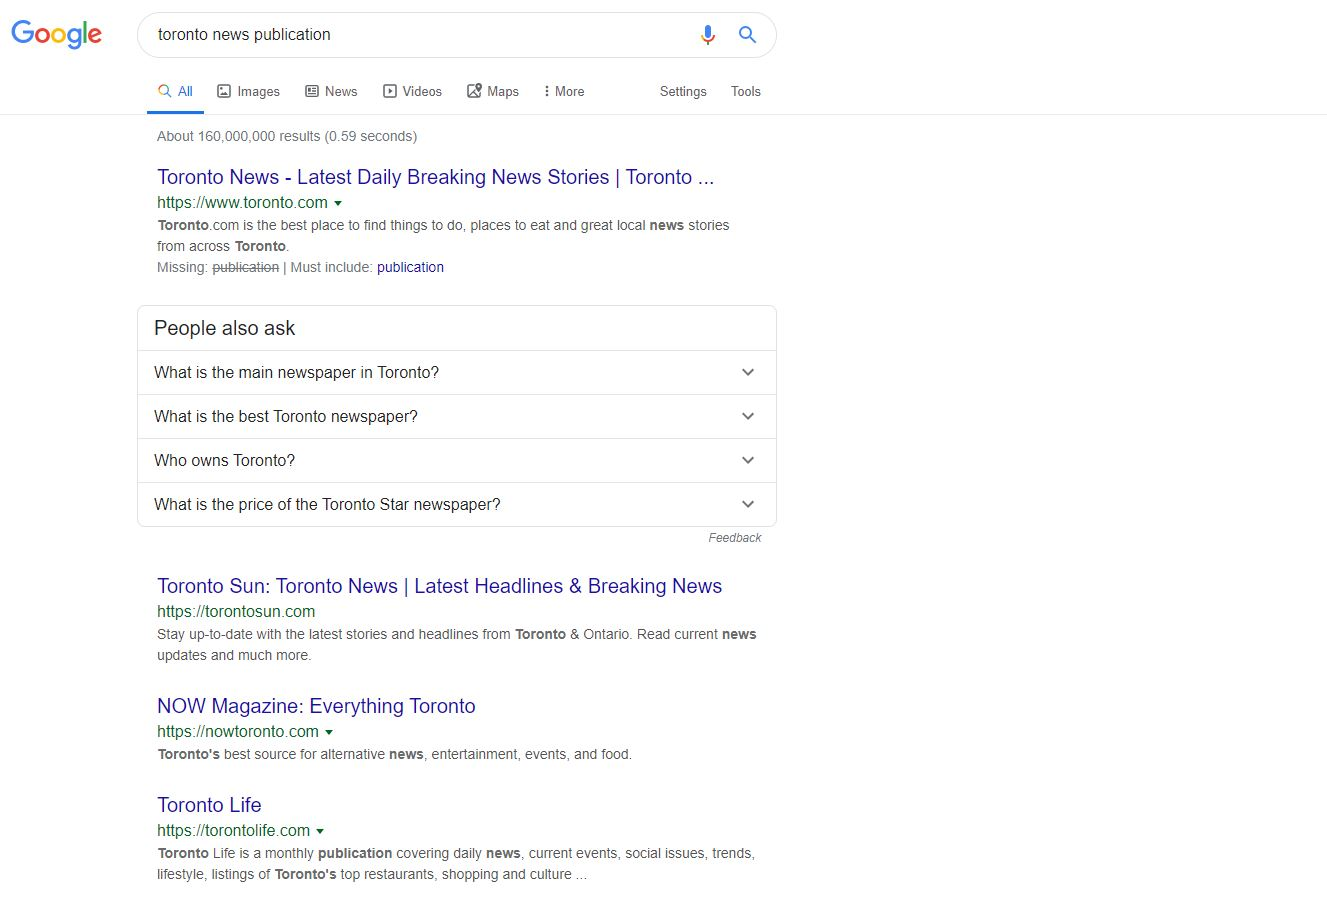 Searching for publications on Google